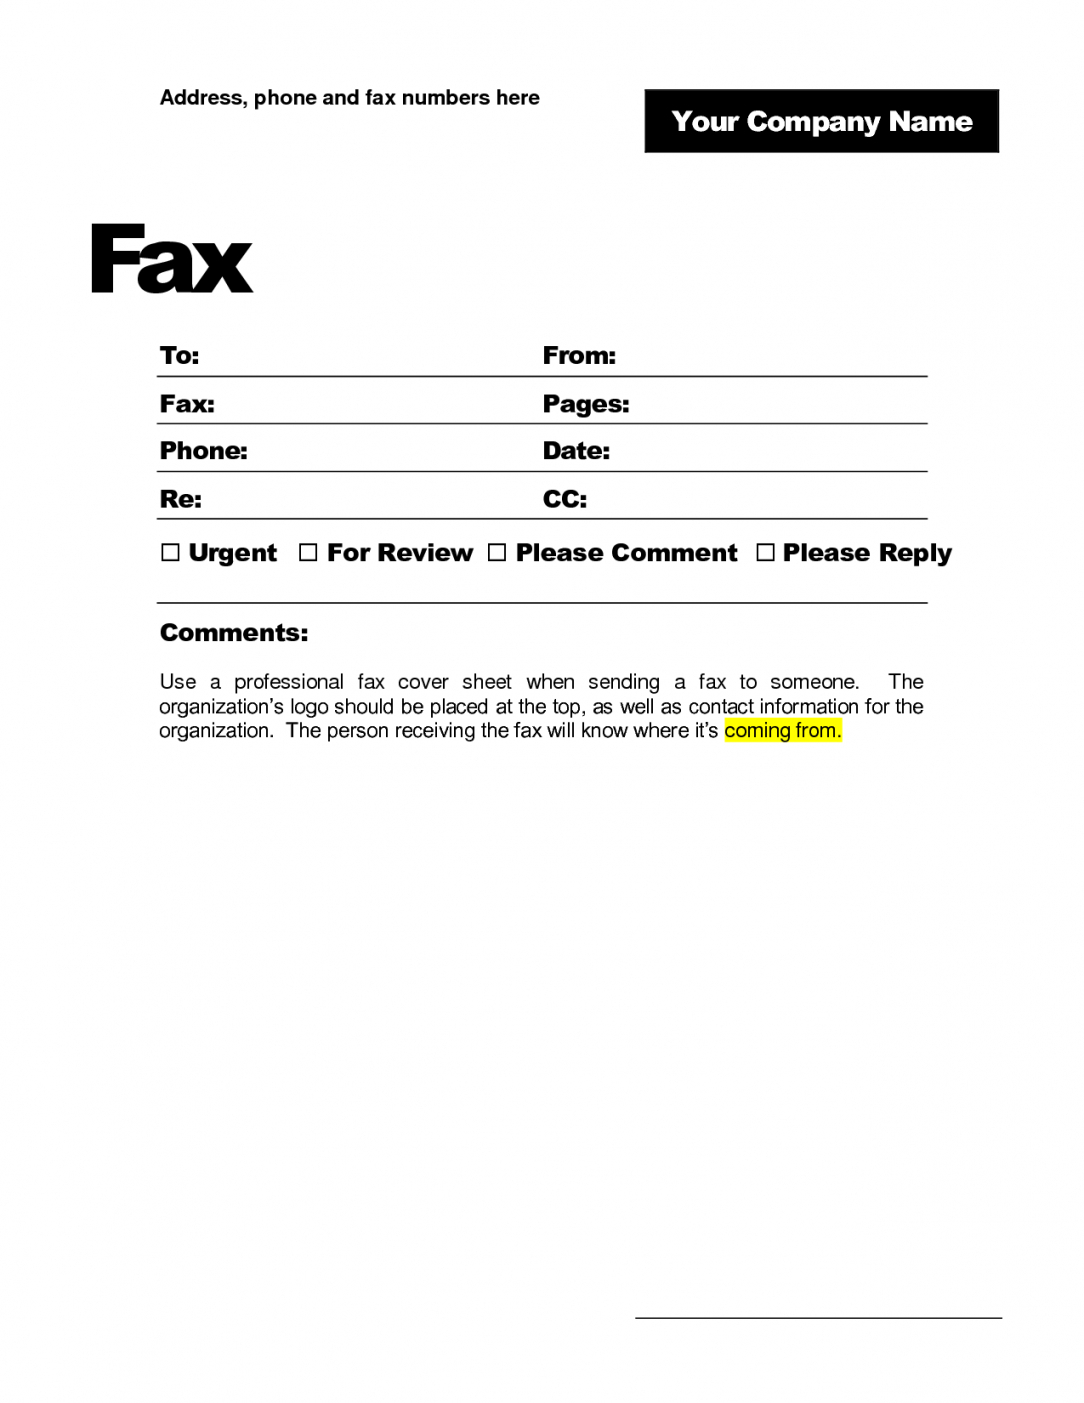 Microsoft Word Fax Cover Letter Template - Fax Cover Letter Doc Professional Business Fax Cover Sheet Sample